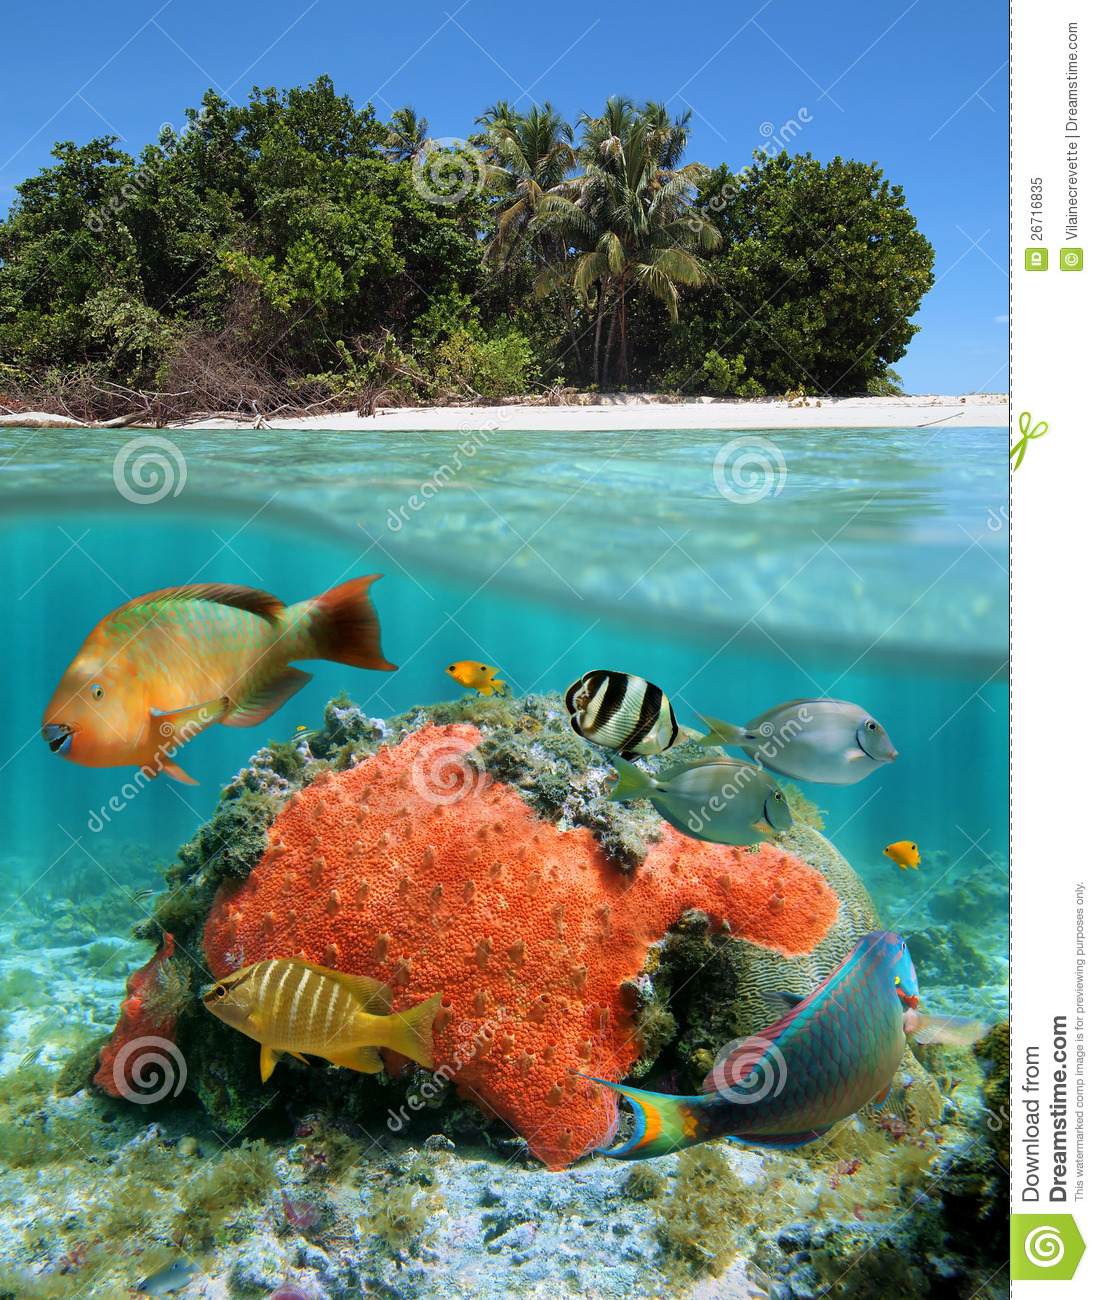 Under The Sea Amp Above The Land Royalty Free Stock Photo